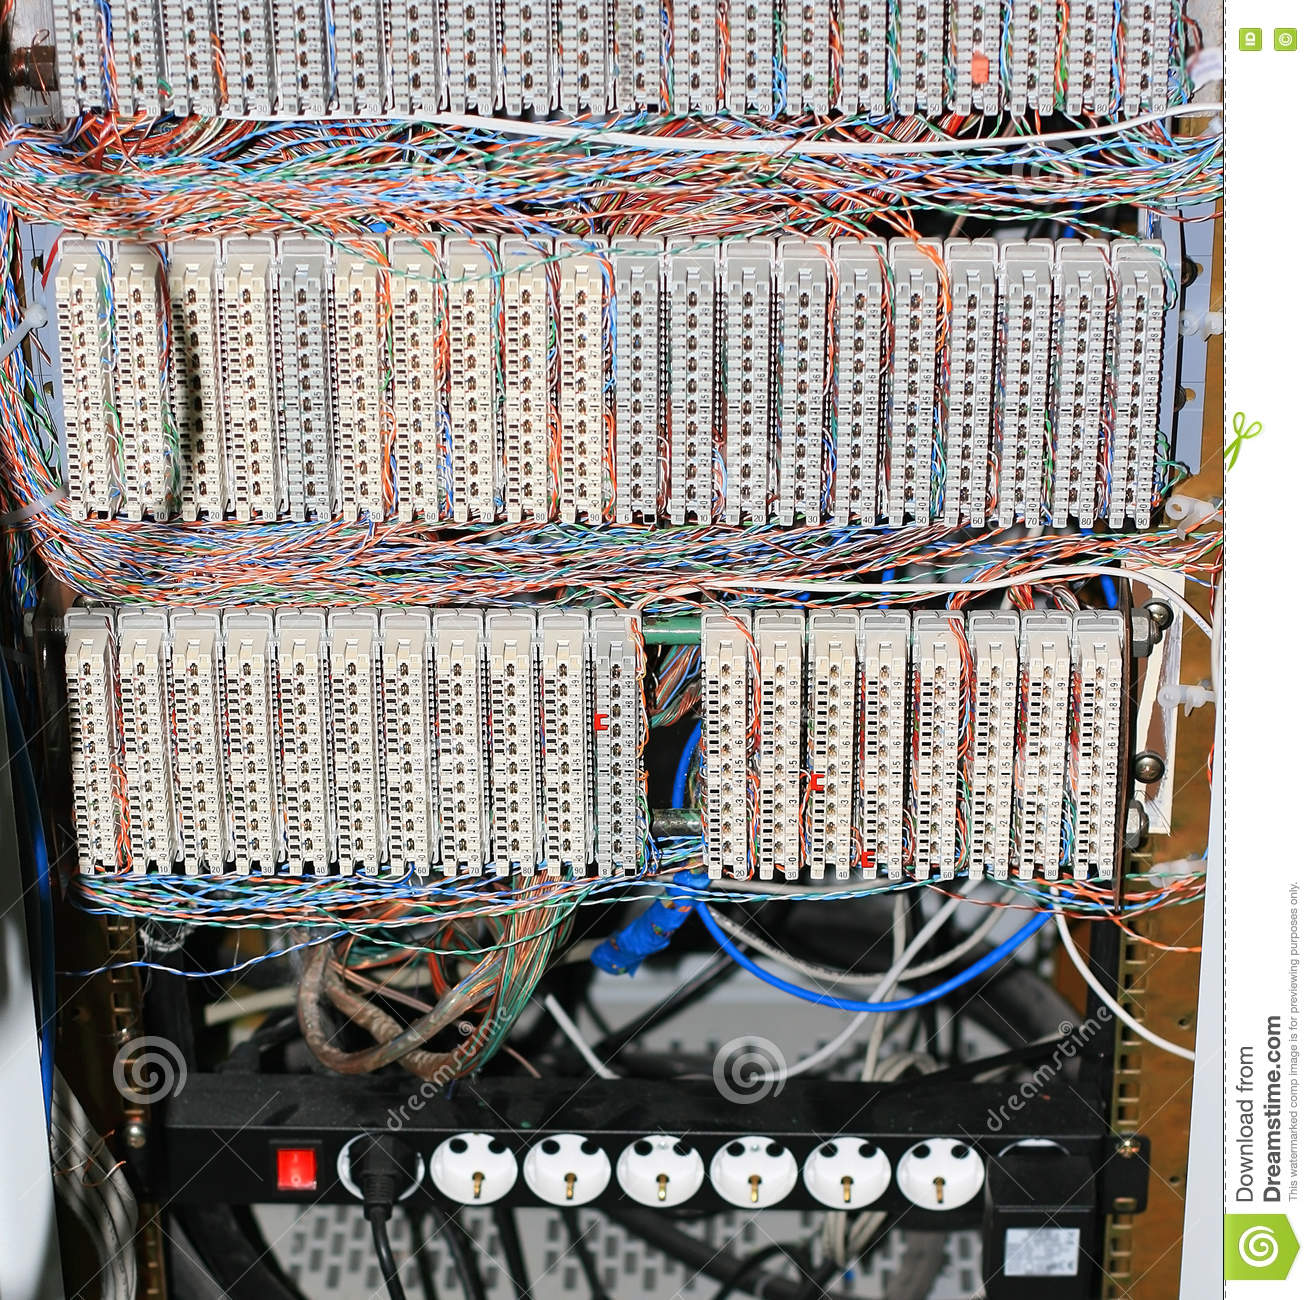 Telephone Wiring Closet Not Lossing Diagram Home Phone Basics Stock Image Of Jack Data Connection 71463219 Rh Dreamstime Com Block